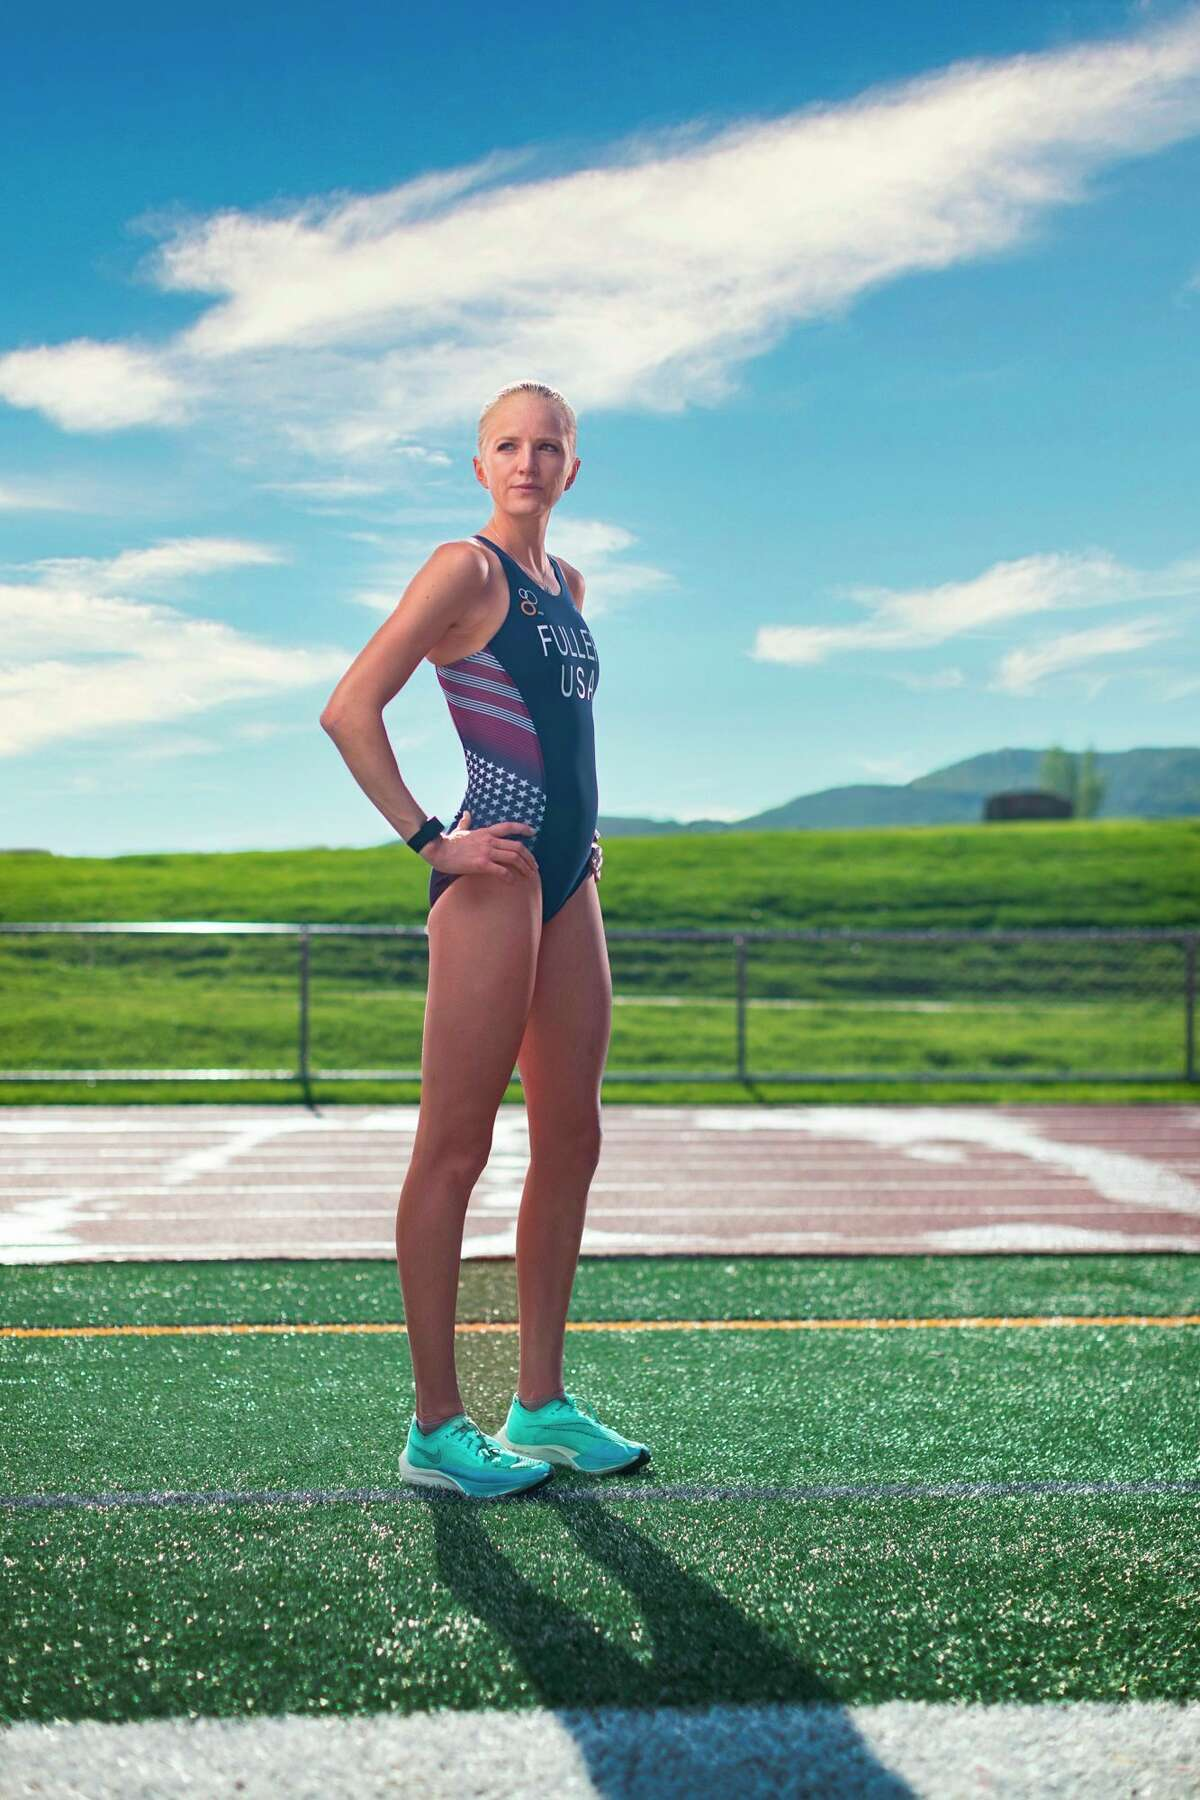 Annie Fuller has dreams of representing the United States in the 2024 Olympics. (Courtesy photo/Dale Travers)